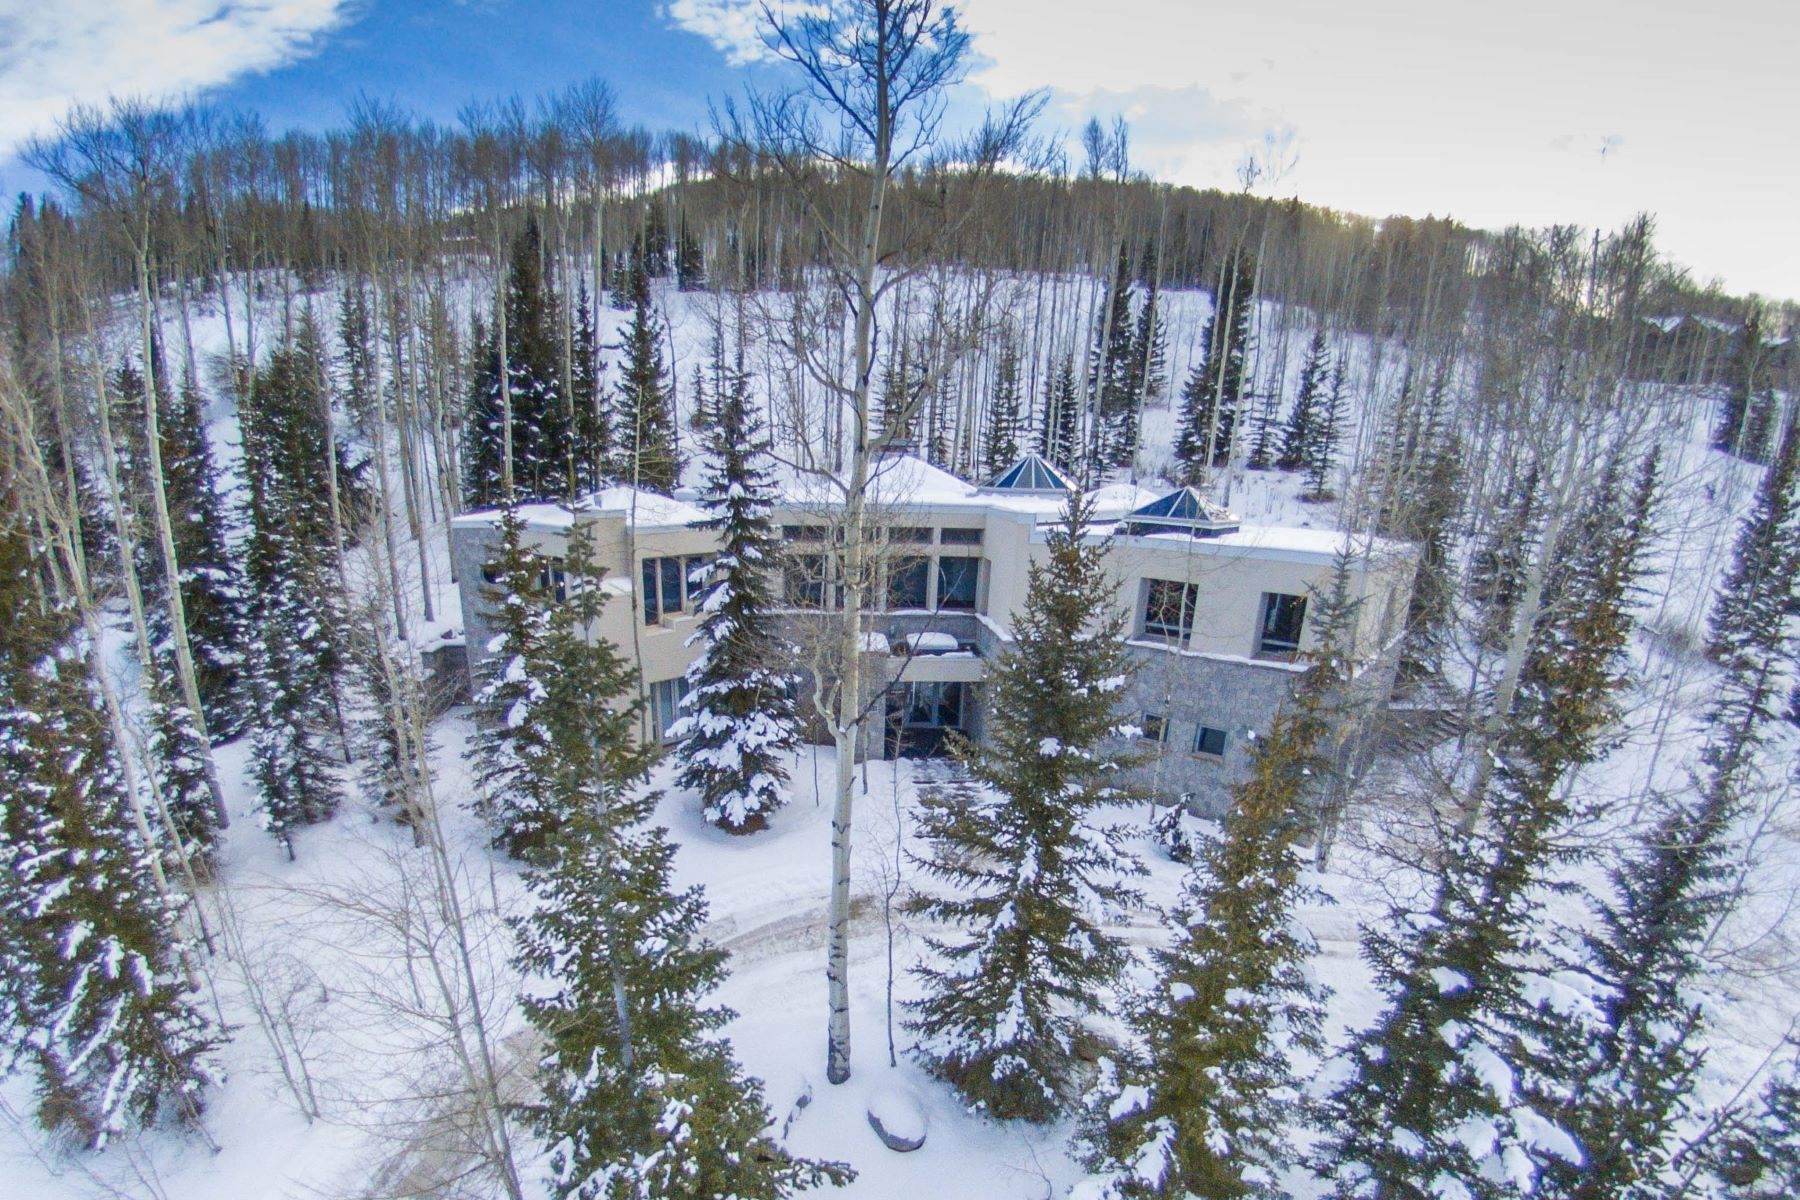 Single Family Home for Sale at Divide Lot: 30 189 Aspen Way, Snowmass Village, Colorado, 81615 United States